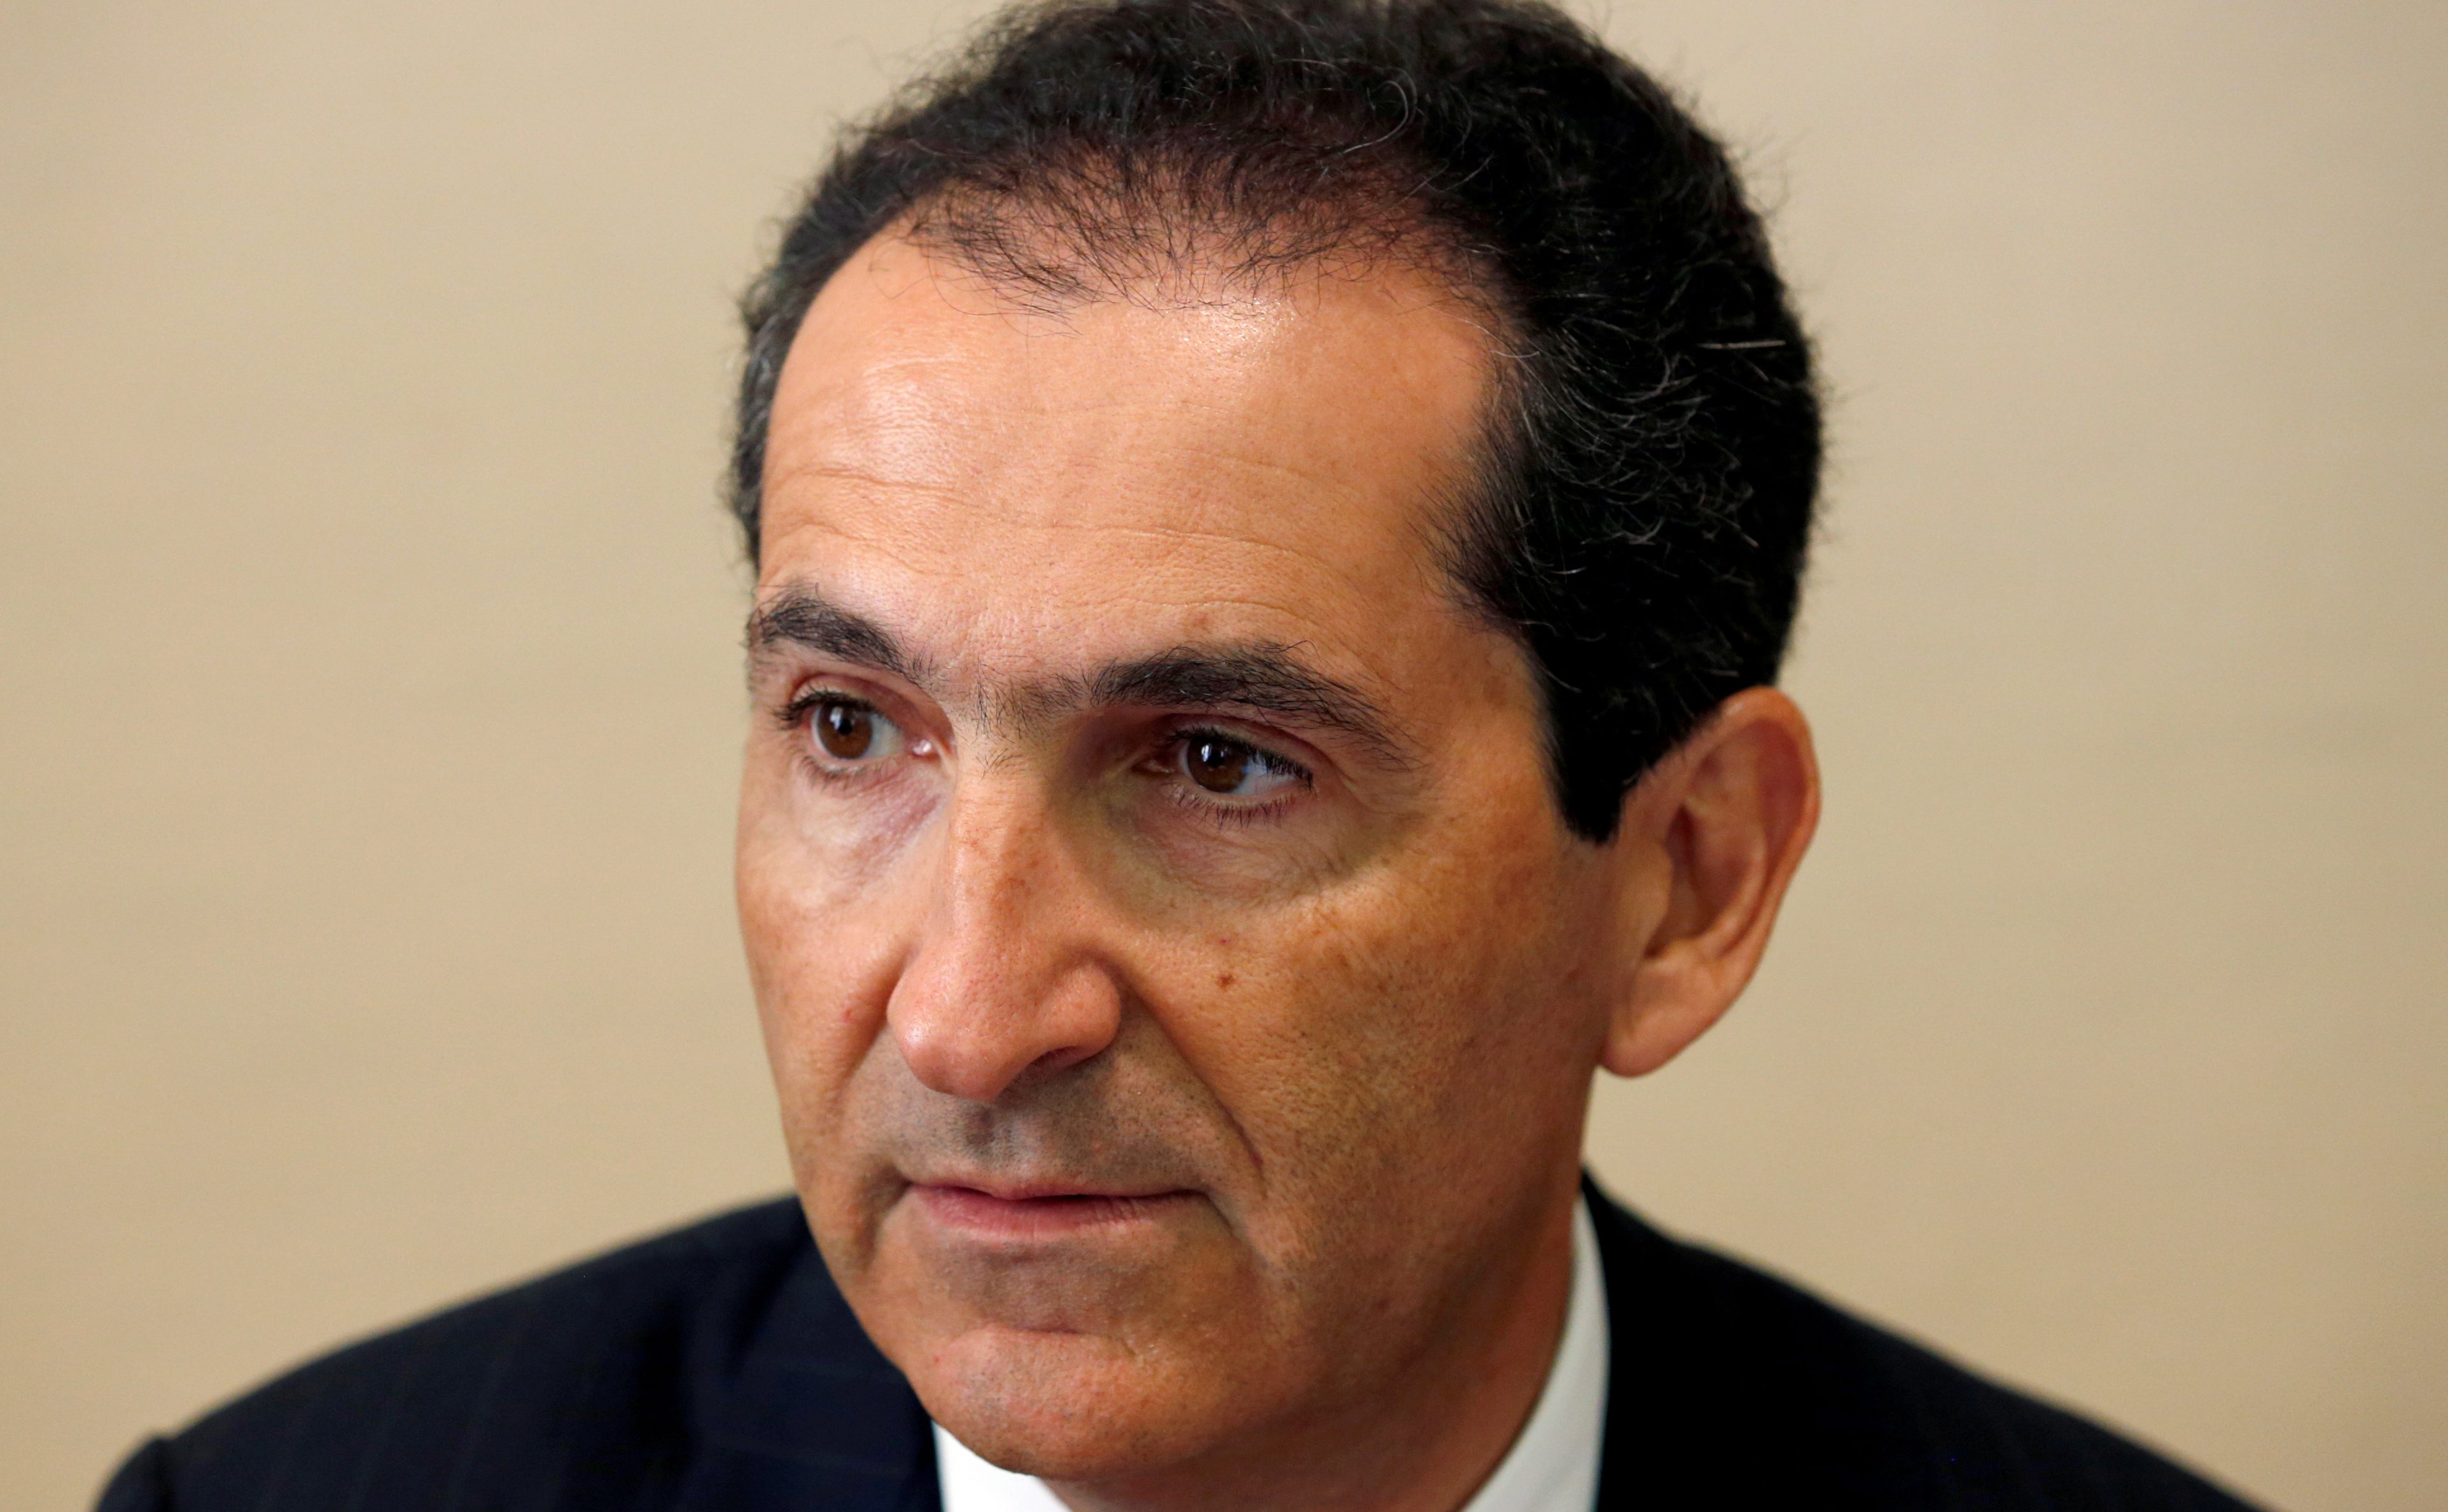 Altice turnaround hinges on credit given to Drahi""